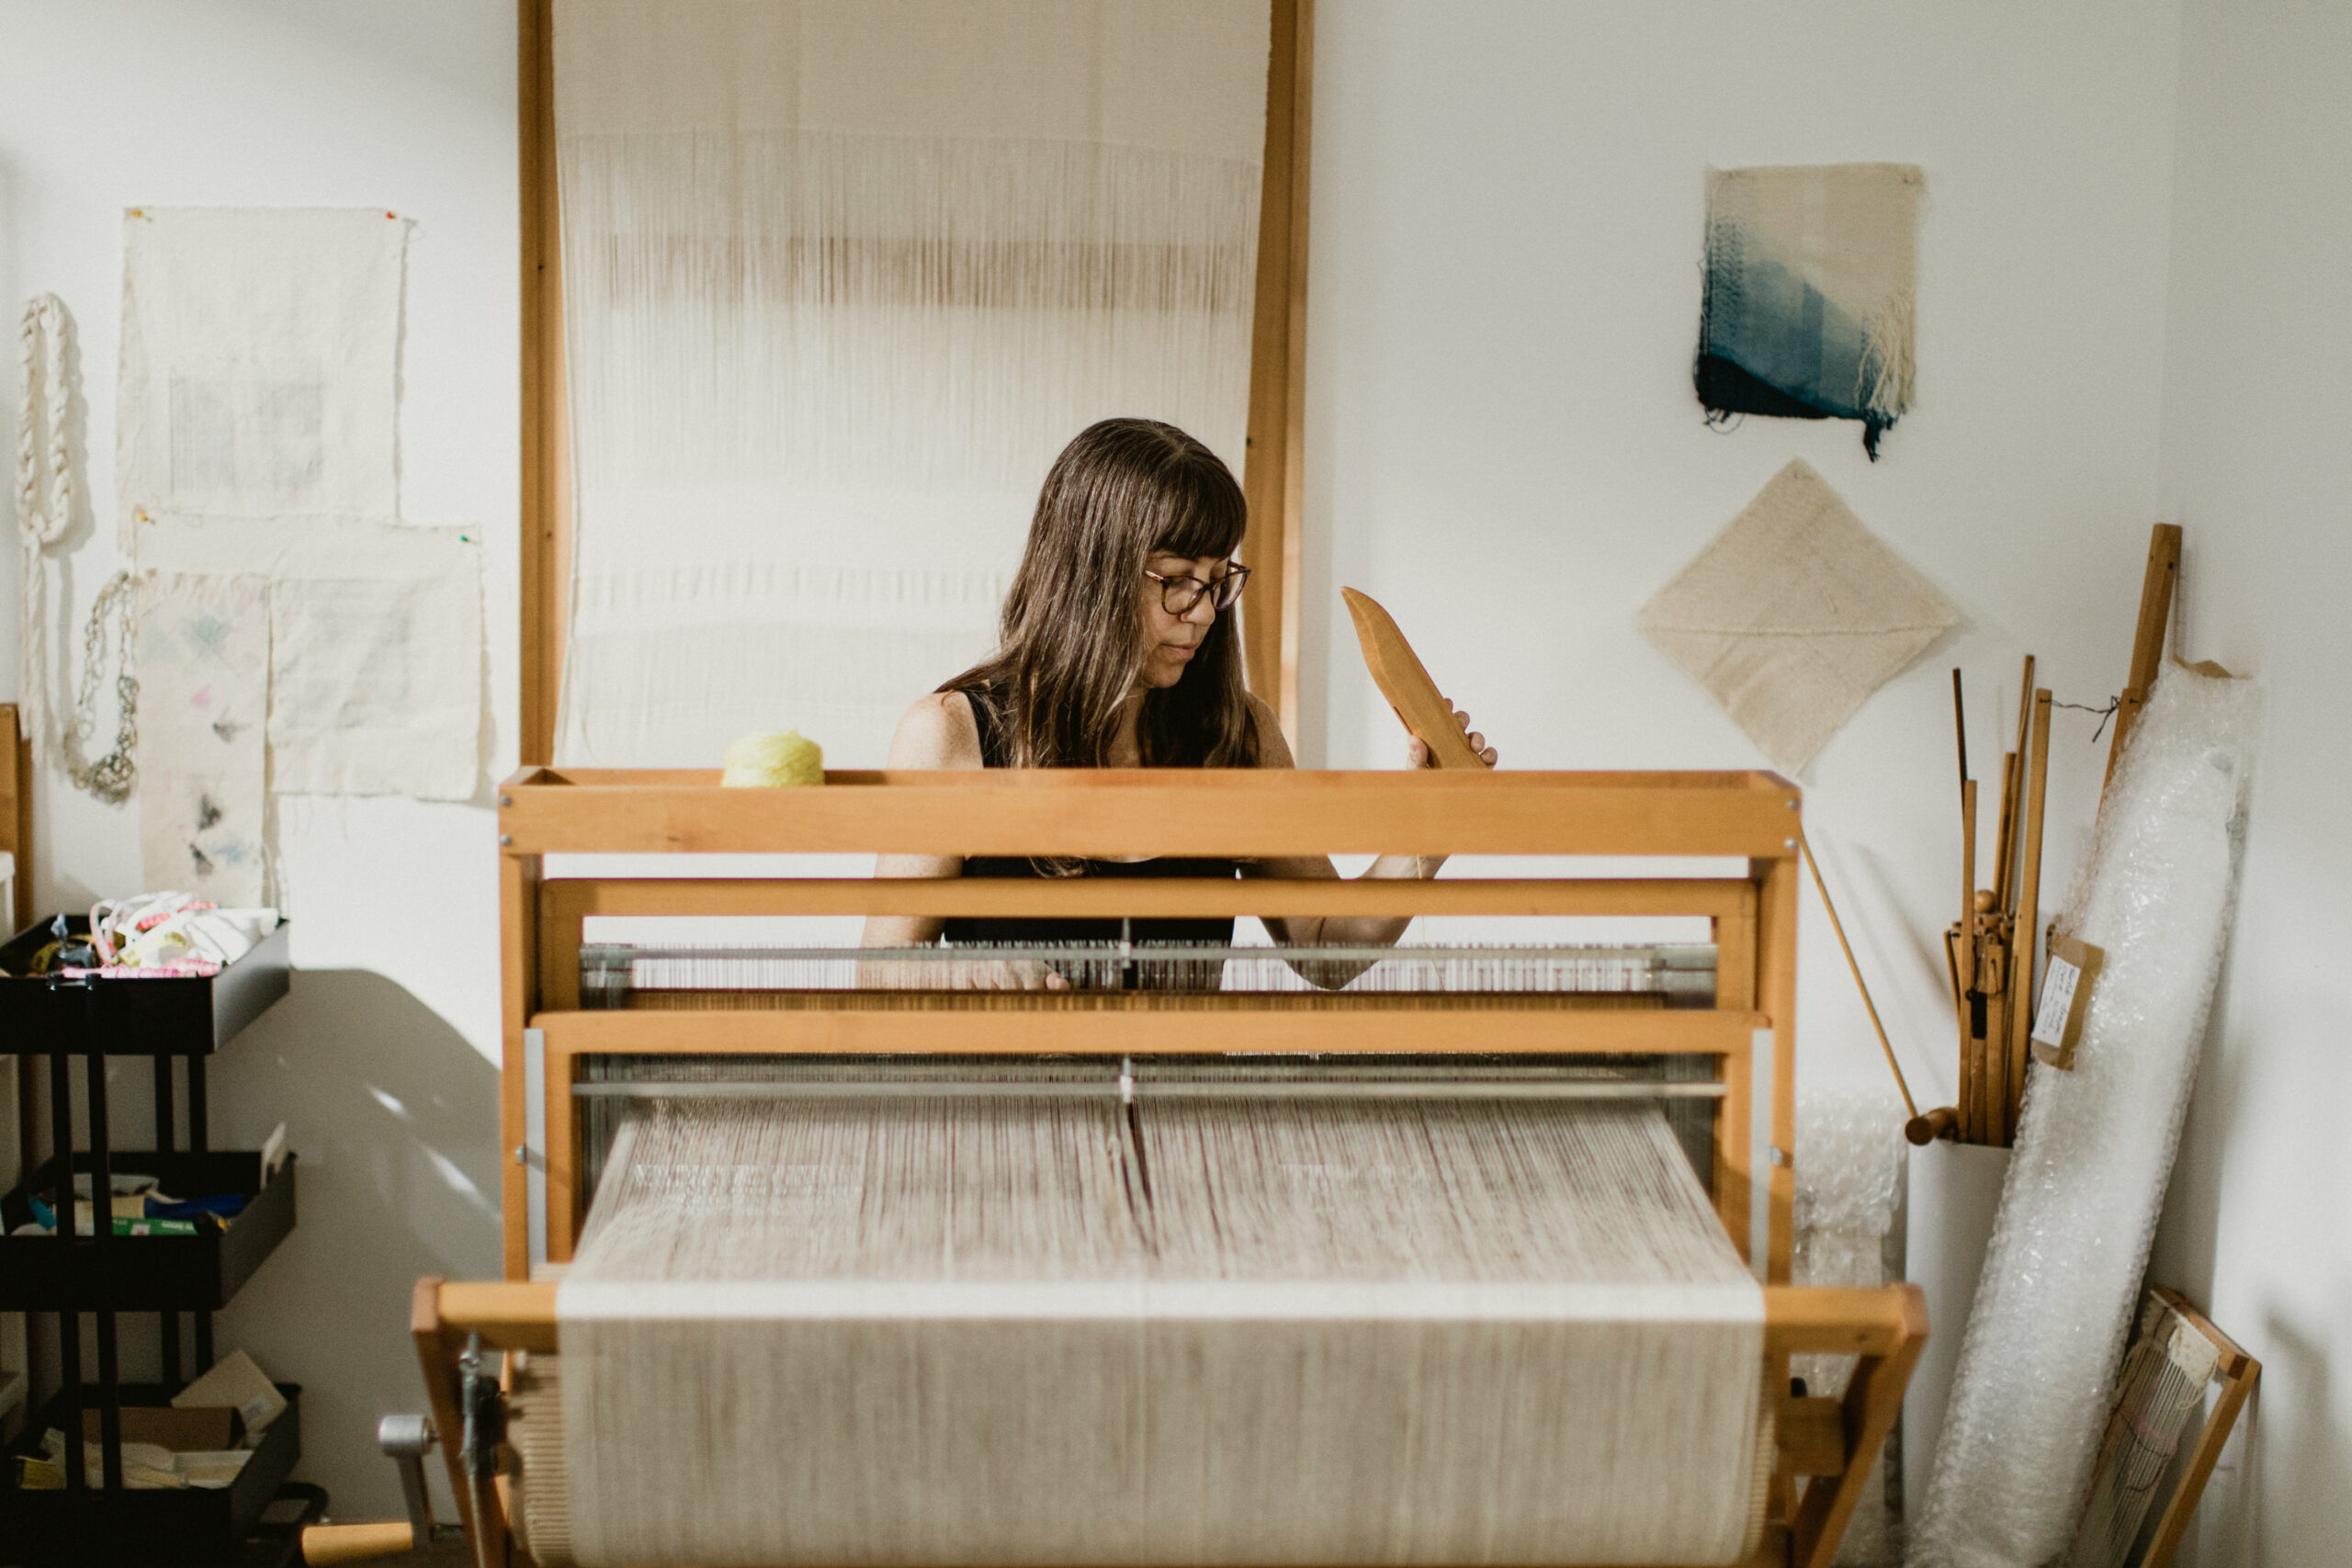 Frances Trombly in the studio. Photo by Zura Lagarde